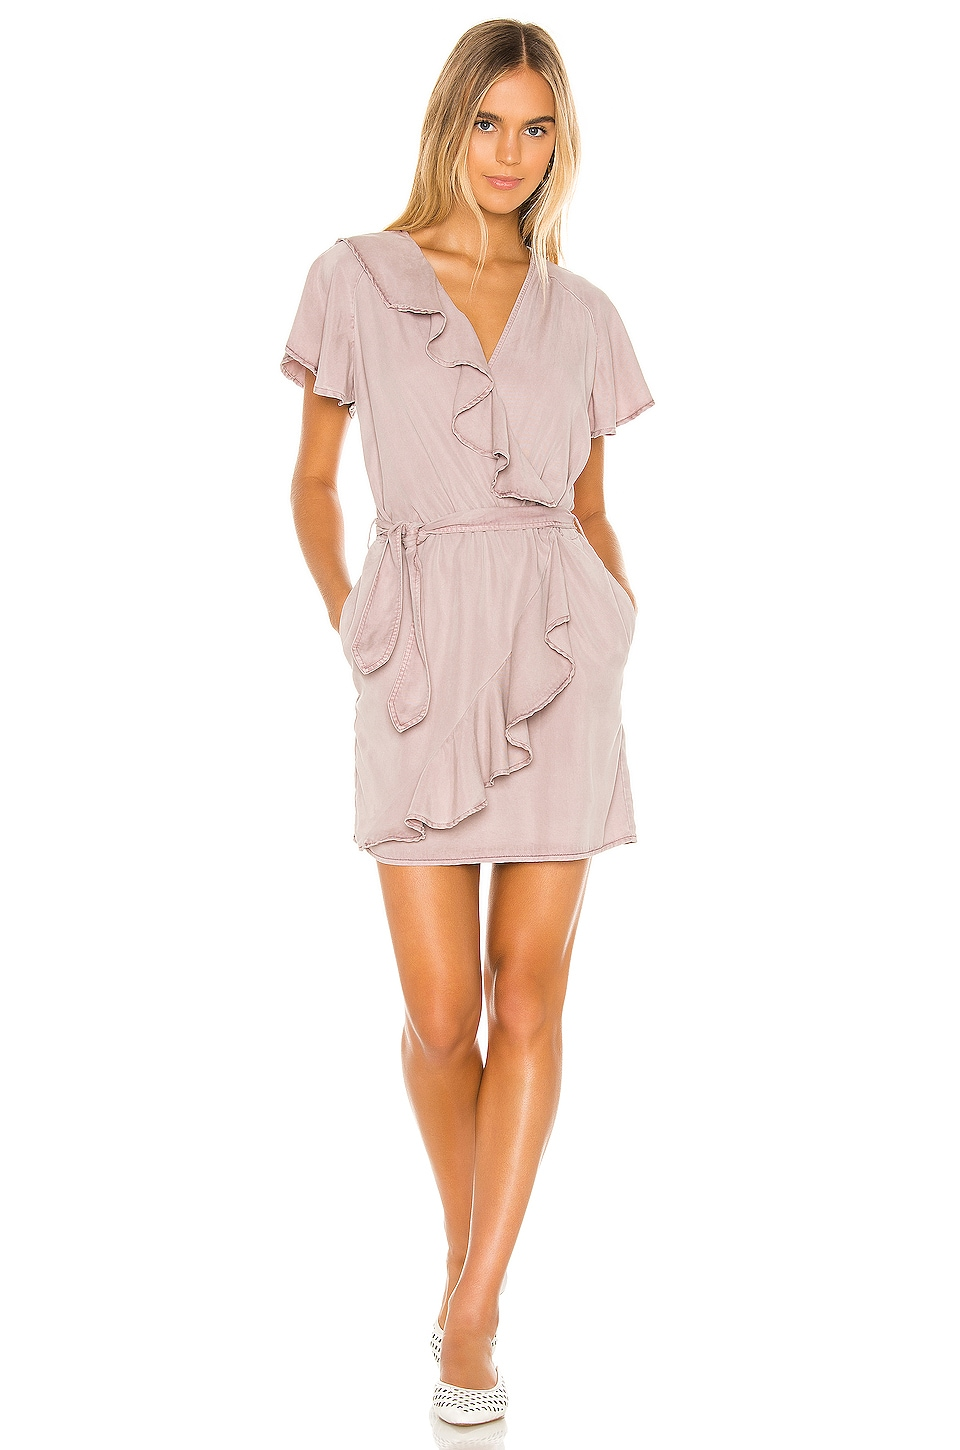 YFB CLOTHING Monika Dress in Pale Mauve